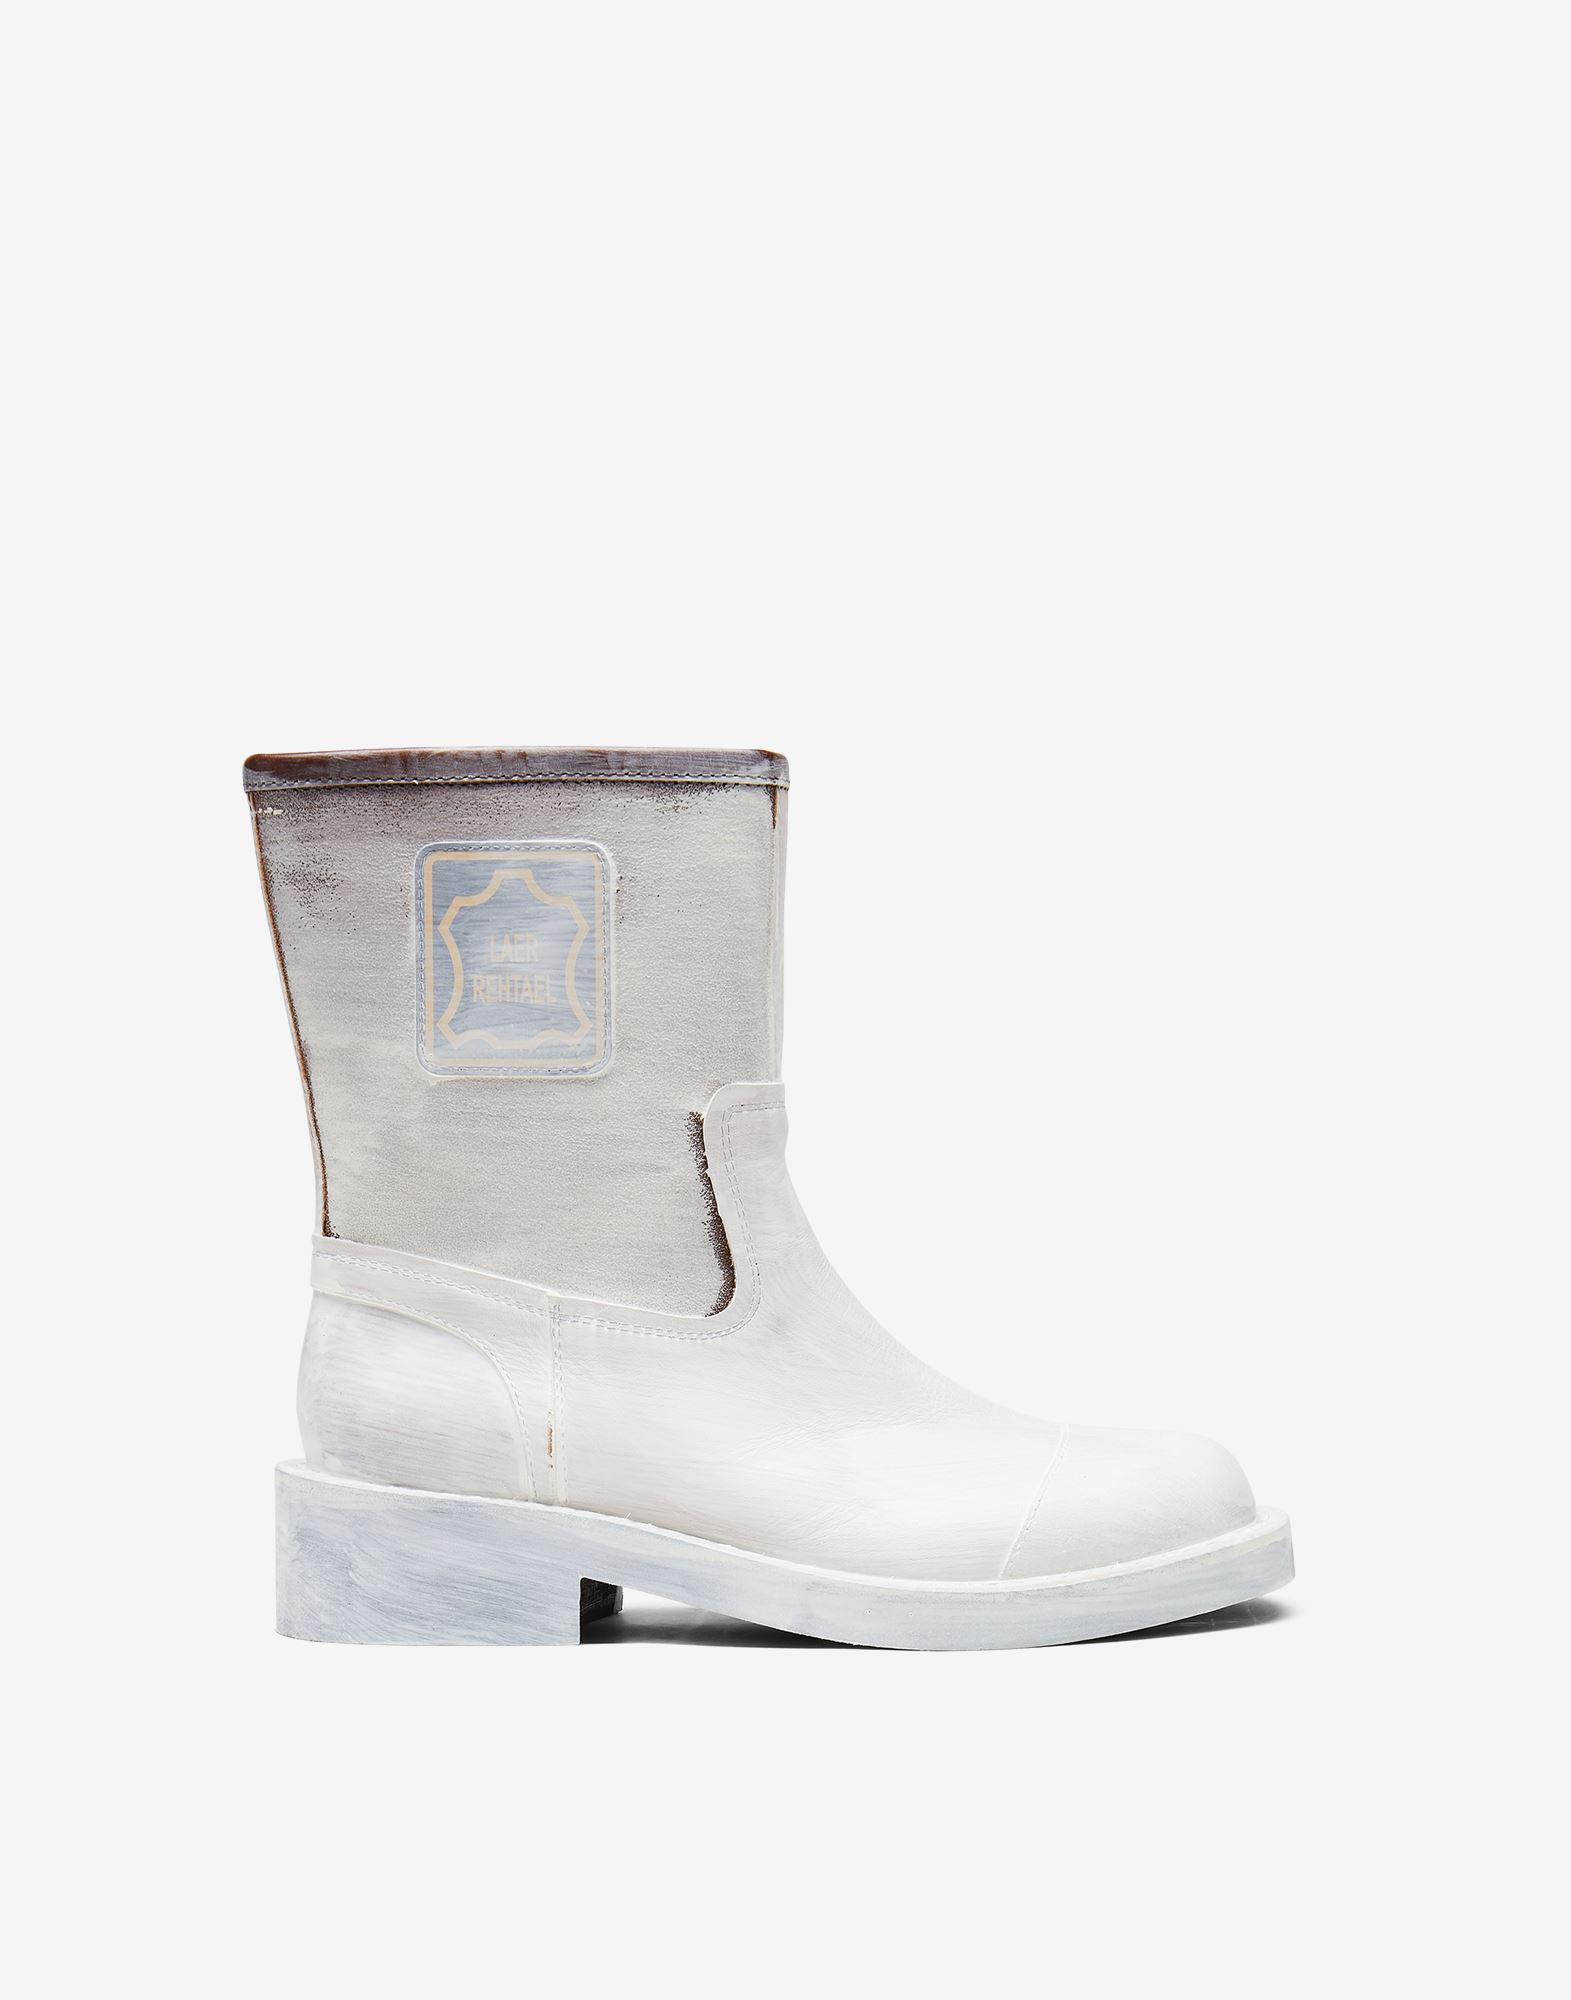 Inside out ankle boots